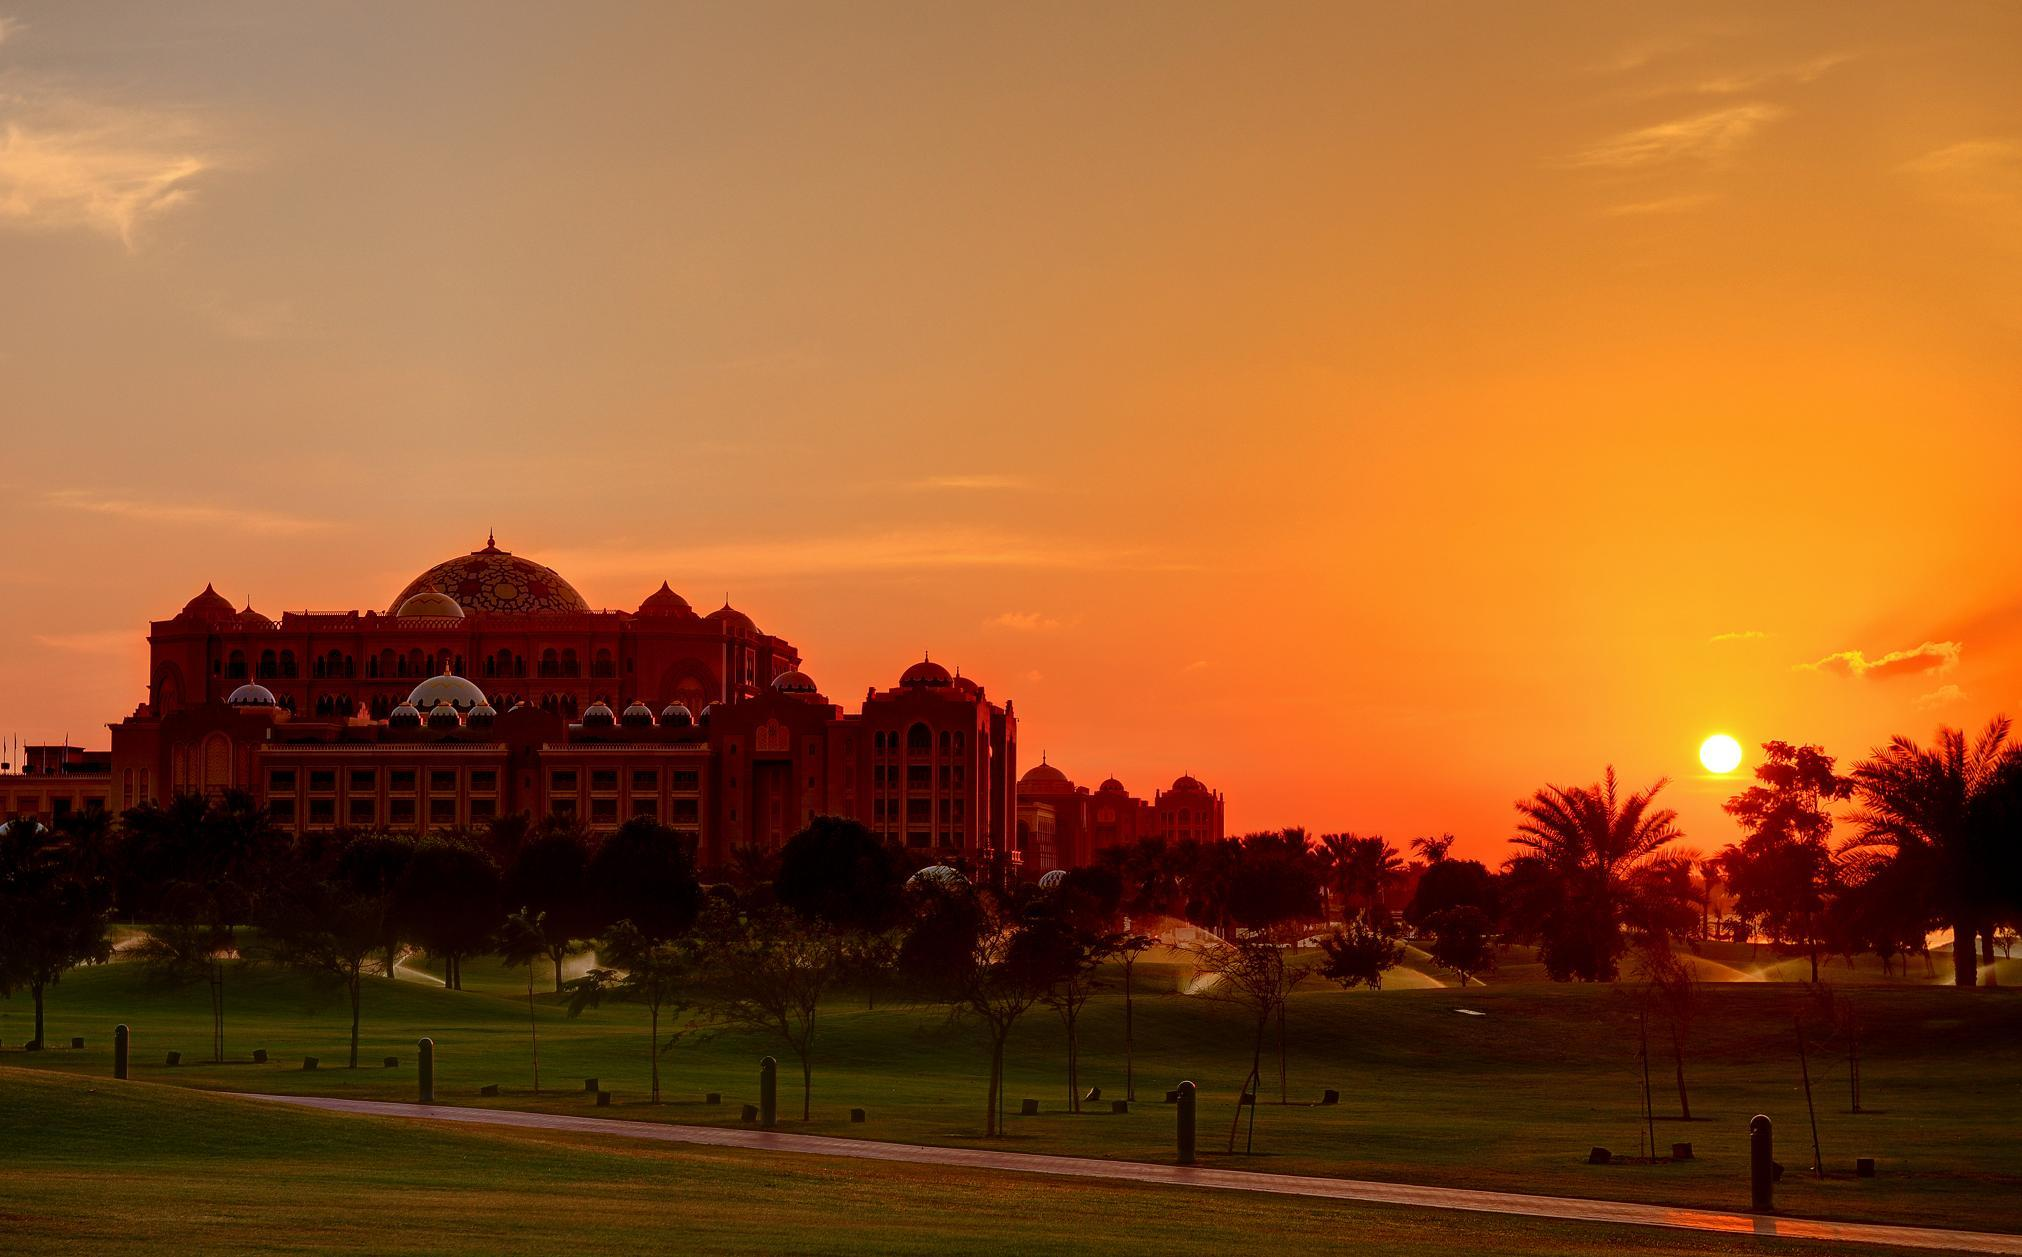 Emirates Palace Hotel Abu Dhabi by Magic in Regular Member Gallery